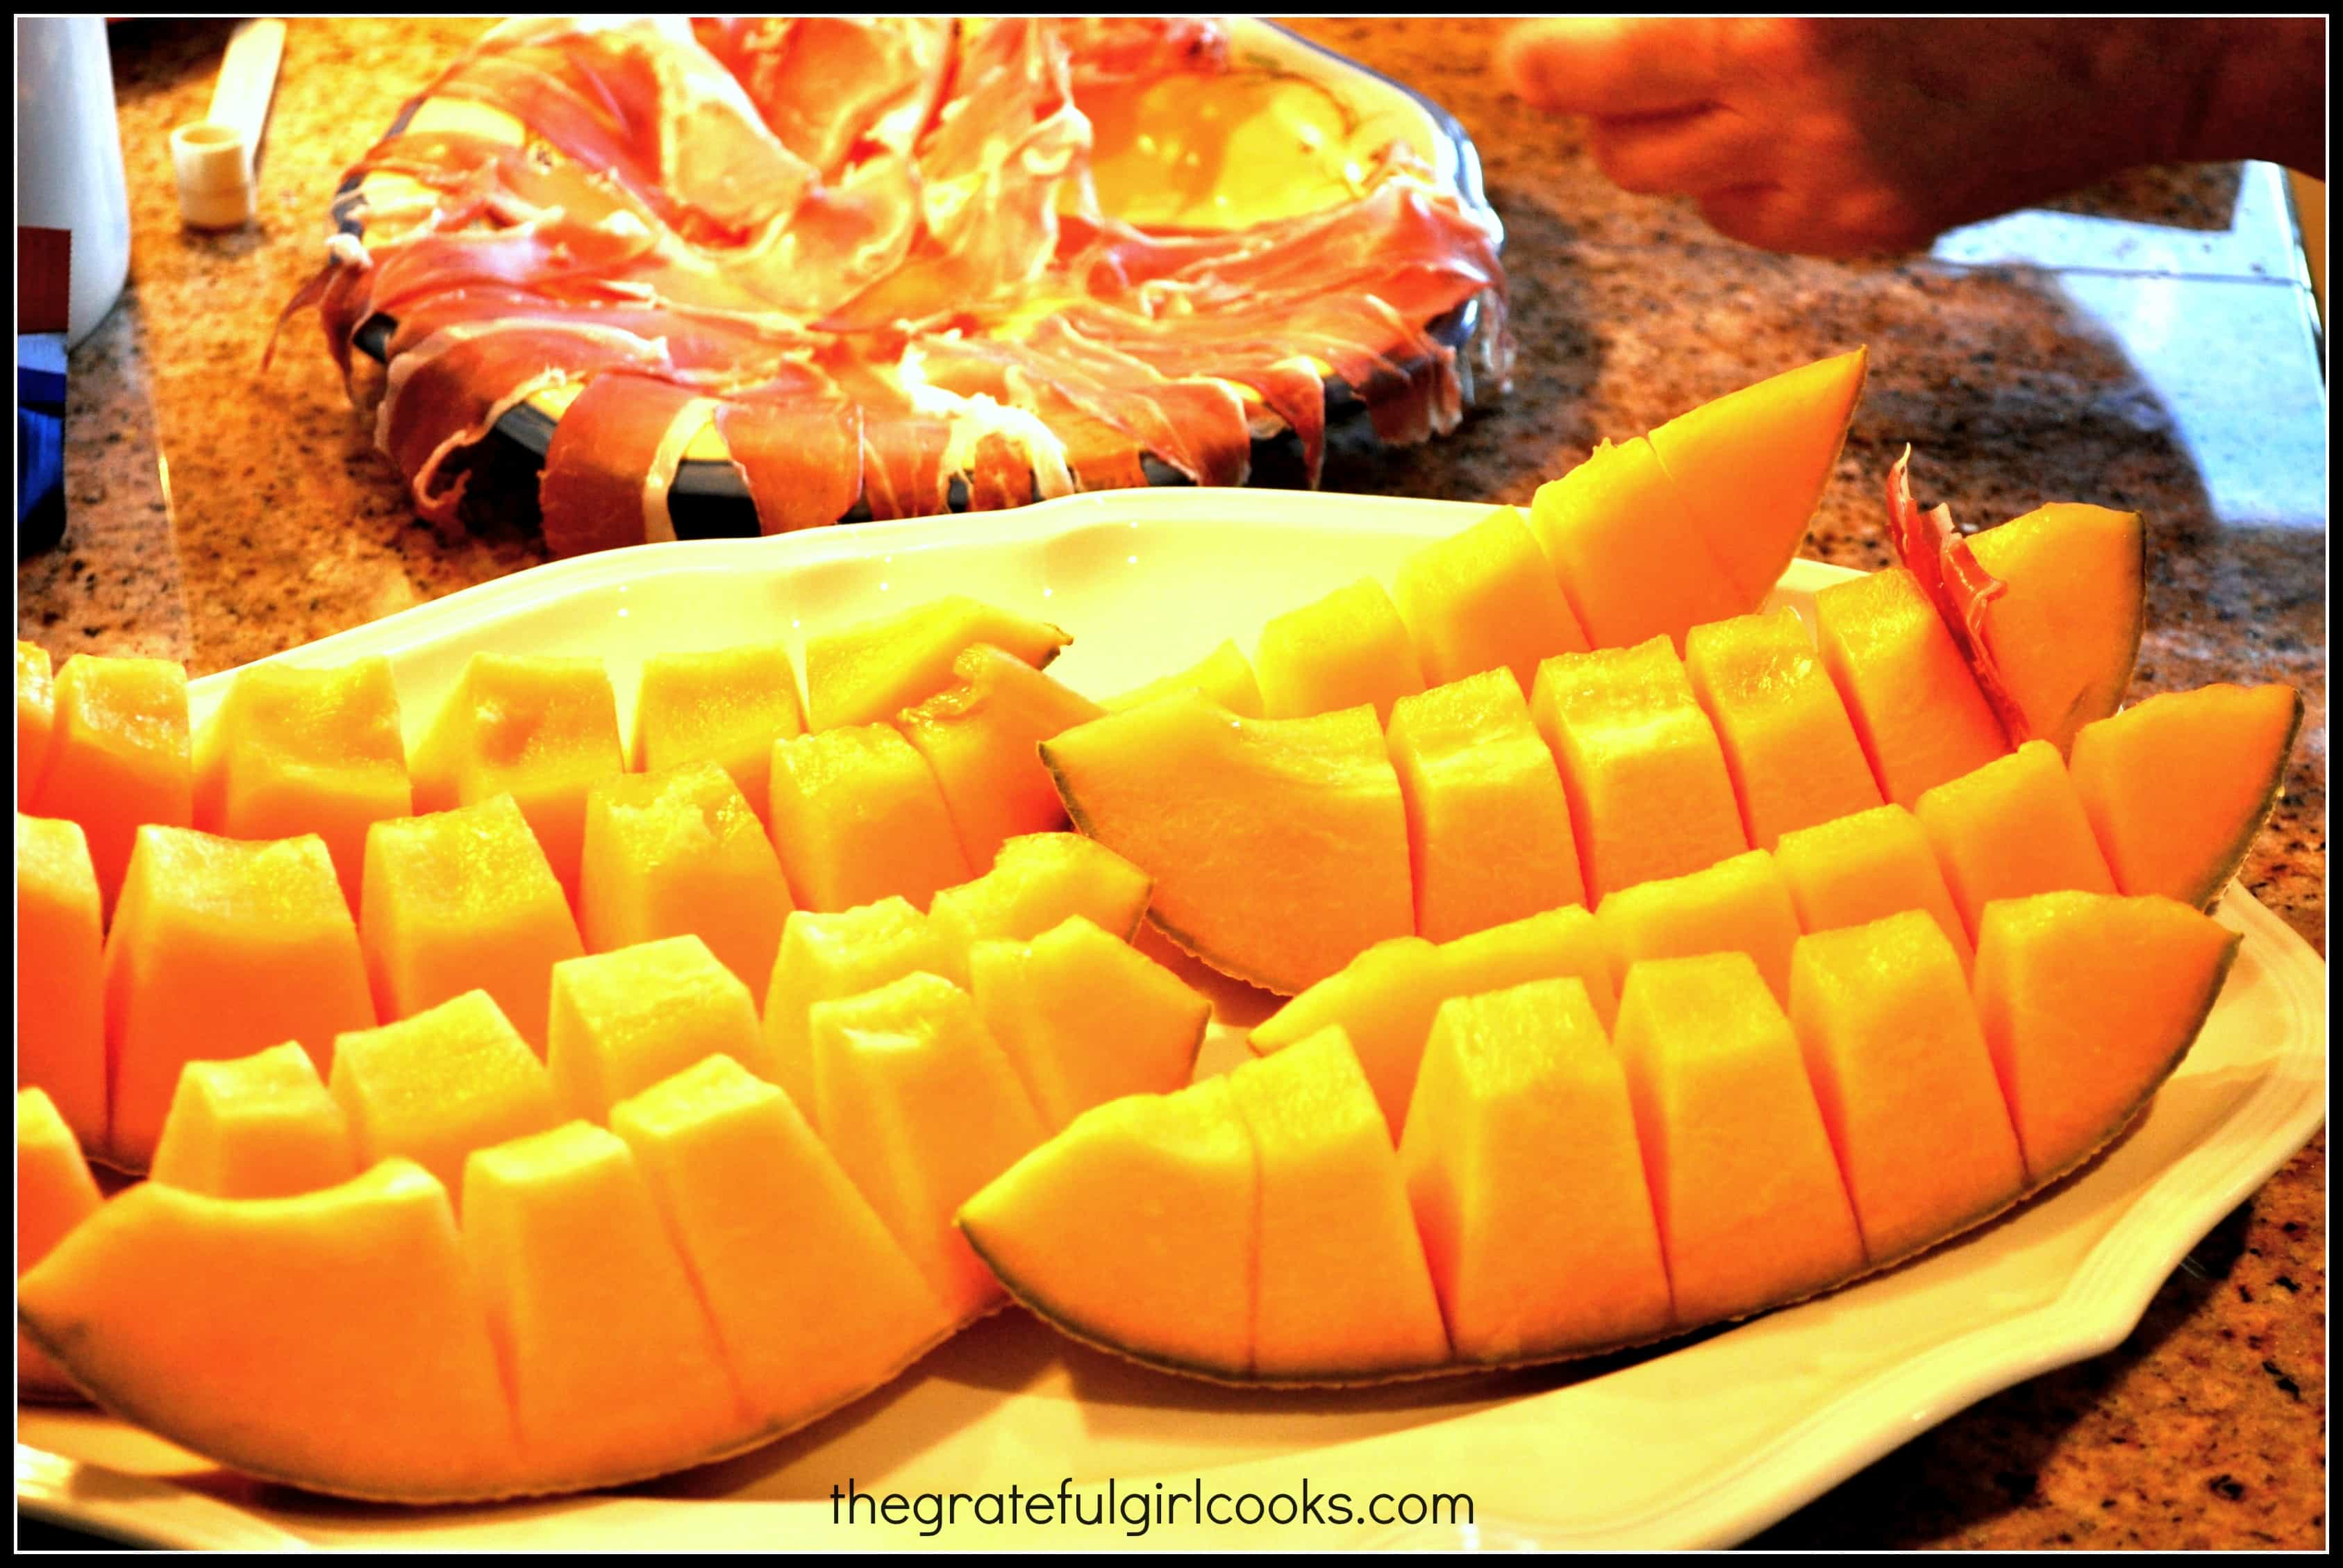 Cantaloupe cut into slices, with prosciutto slices in background